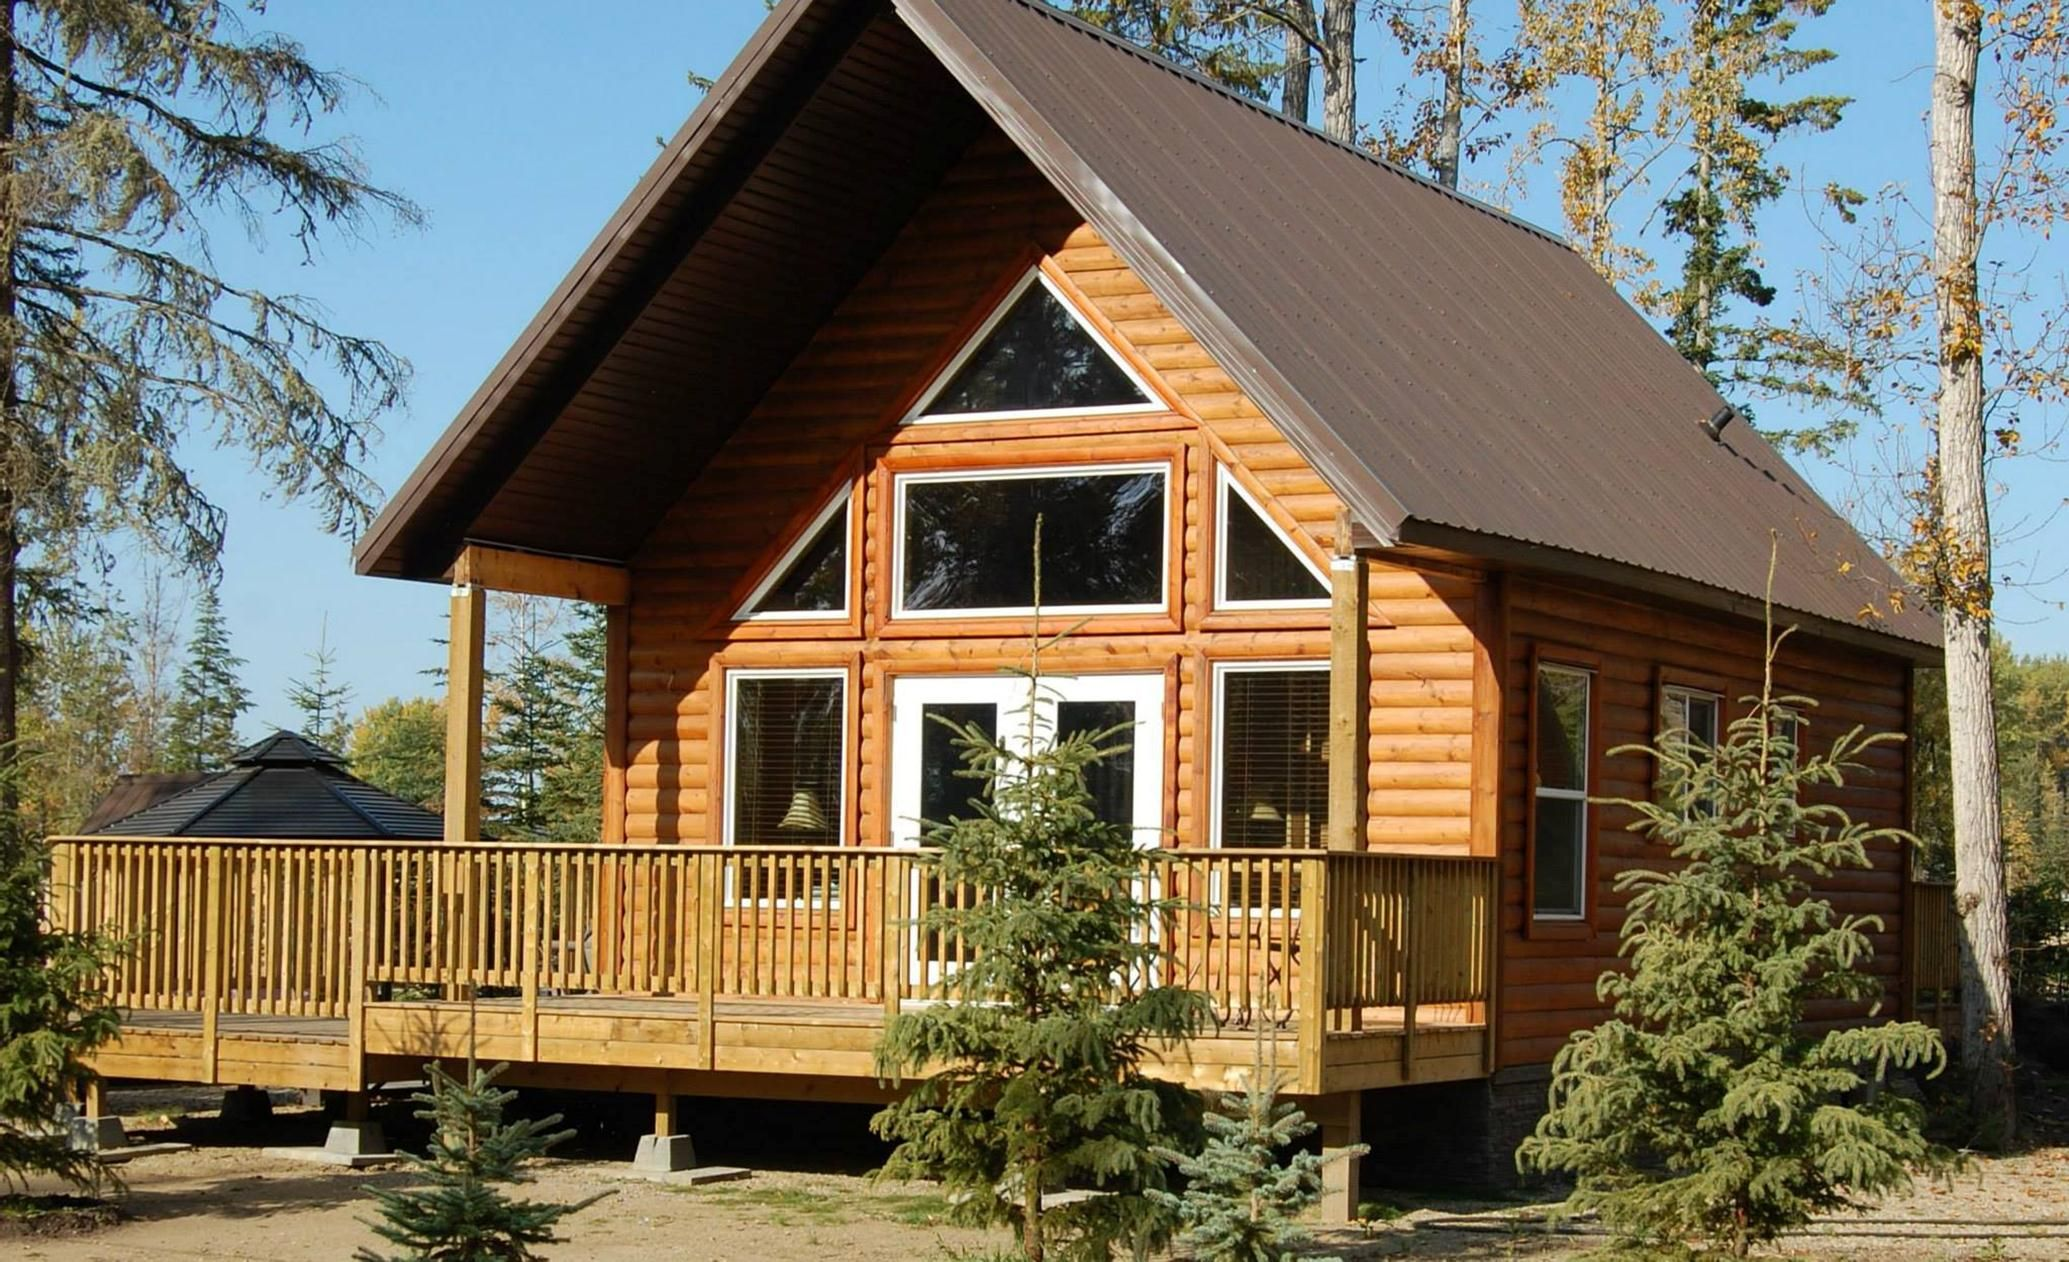 The Hudson Prefab Cabin and Cottage